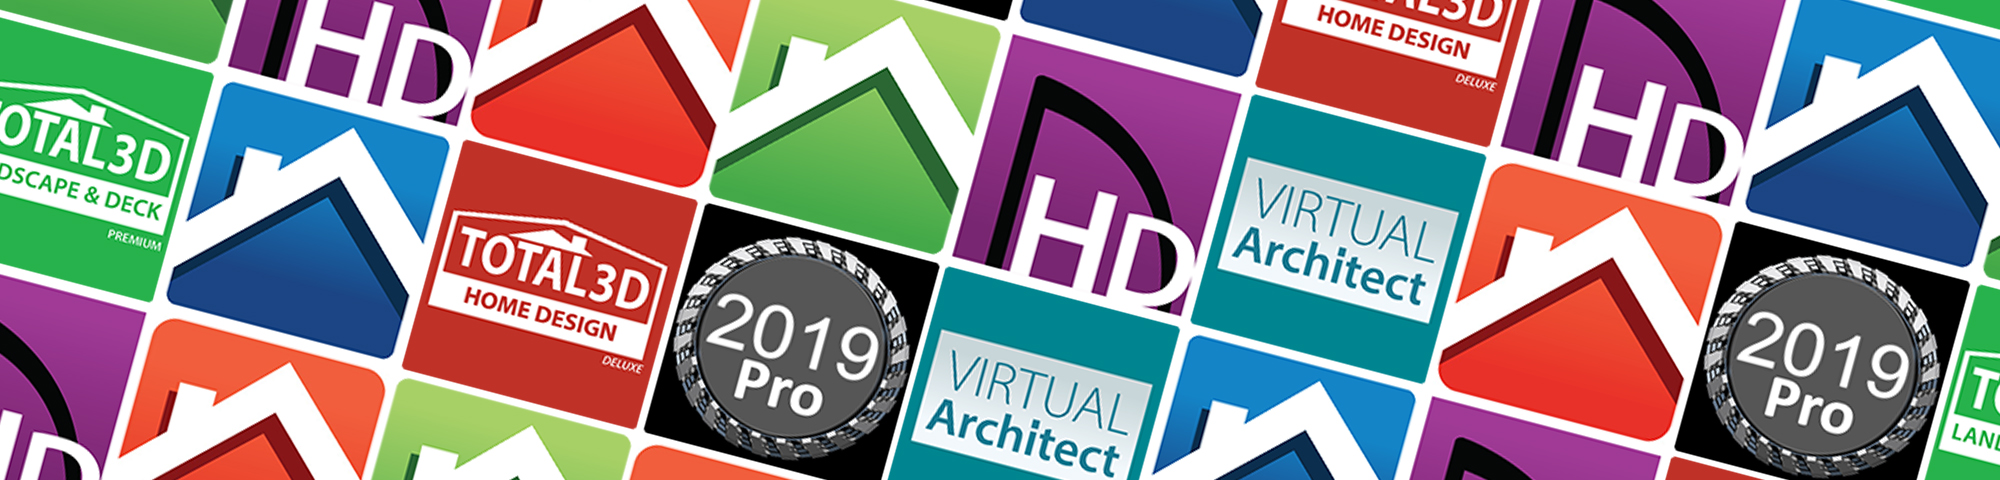 Best Interior Design 2019 - Programs for Windows ... on graphic design construction company, graphic design home repair, clip art home construction, project management home construction, portfolio construction, graphic design home office furniture, prefab home construction, infographic home construction, glass home construction,